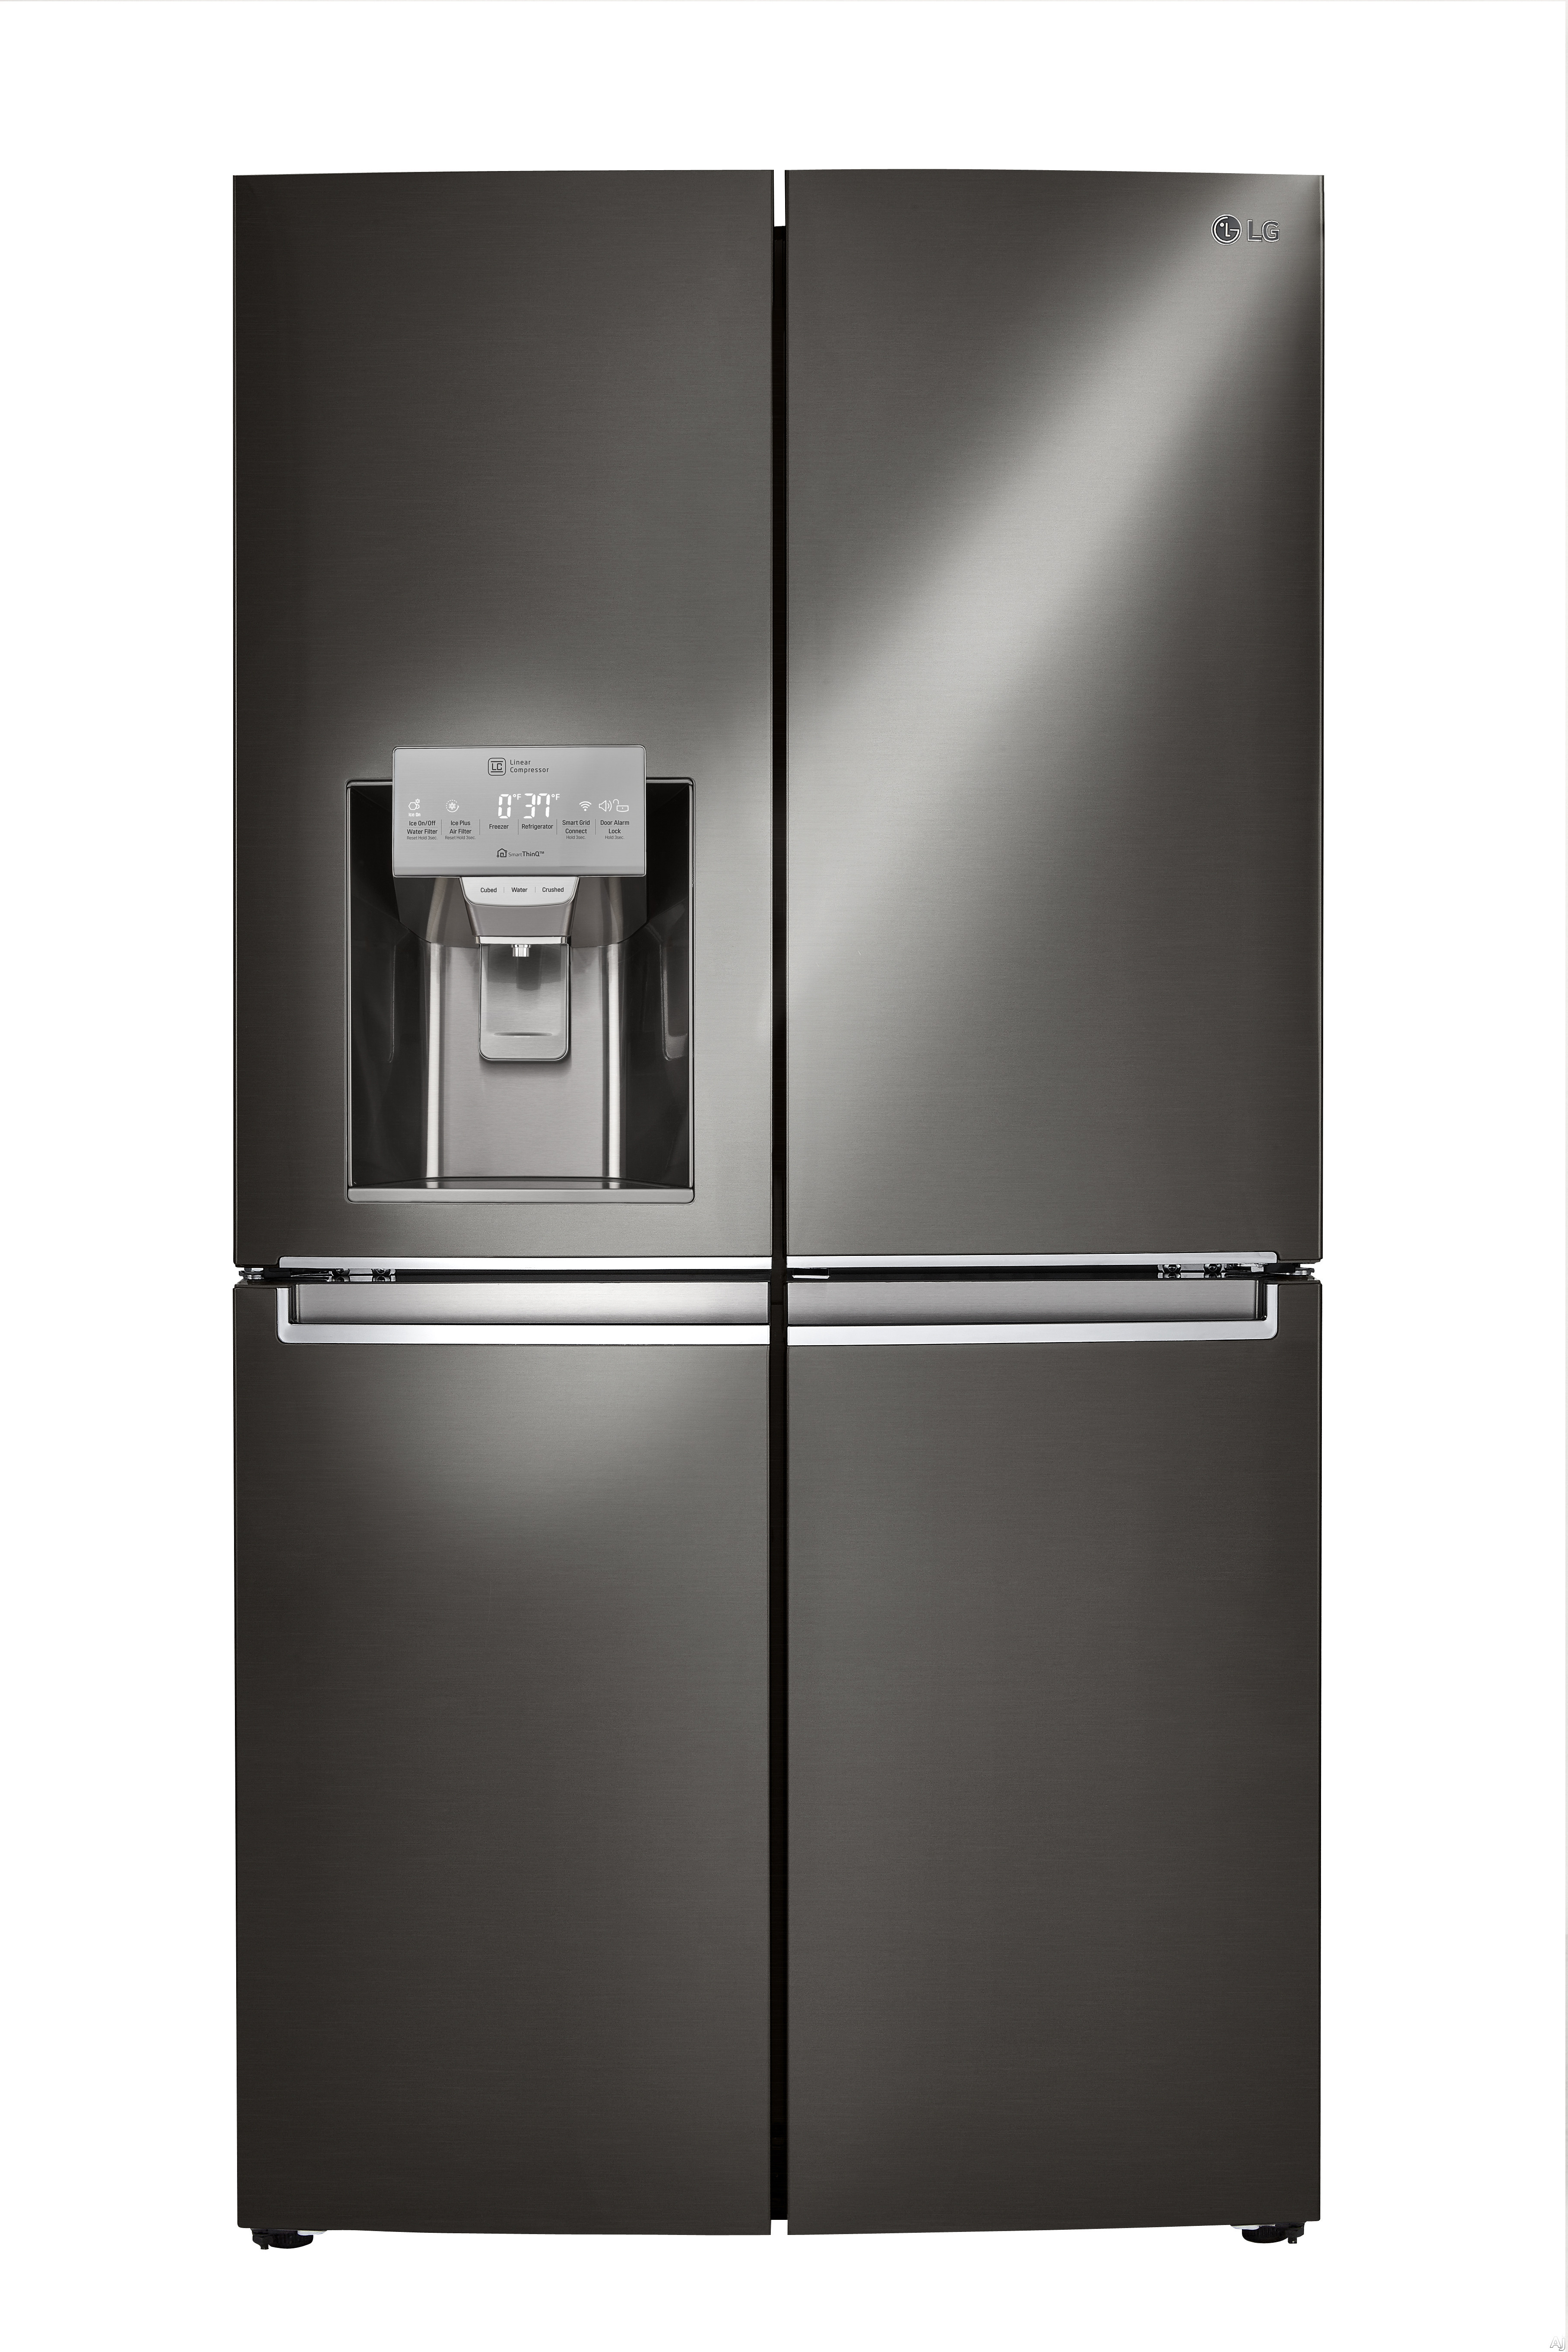 Image of LG LNXS30866D 36 Inch 4-Door French Door Refrigerator with Door-in-Door® s/ ColdSaver Panel™, Fold-Out Mini-Table, Ice and Water Dispenser, Slim SpacePlus® Ice System, Cantilevered SpillProtector™ Shelving, Fresh Air Filter, ENERGY STAR® and 29.9 c